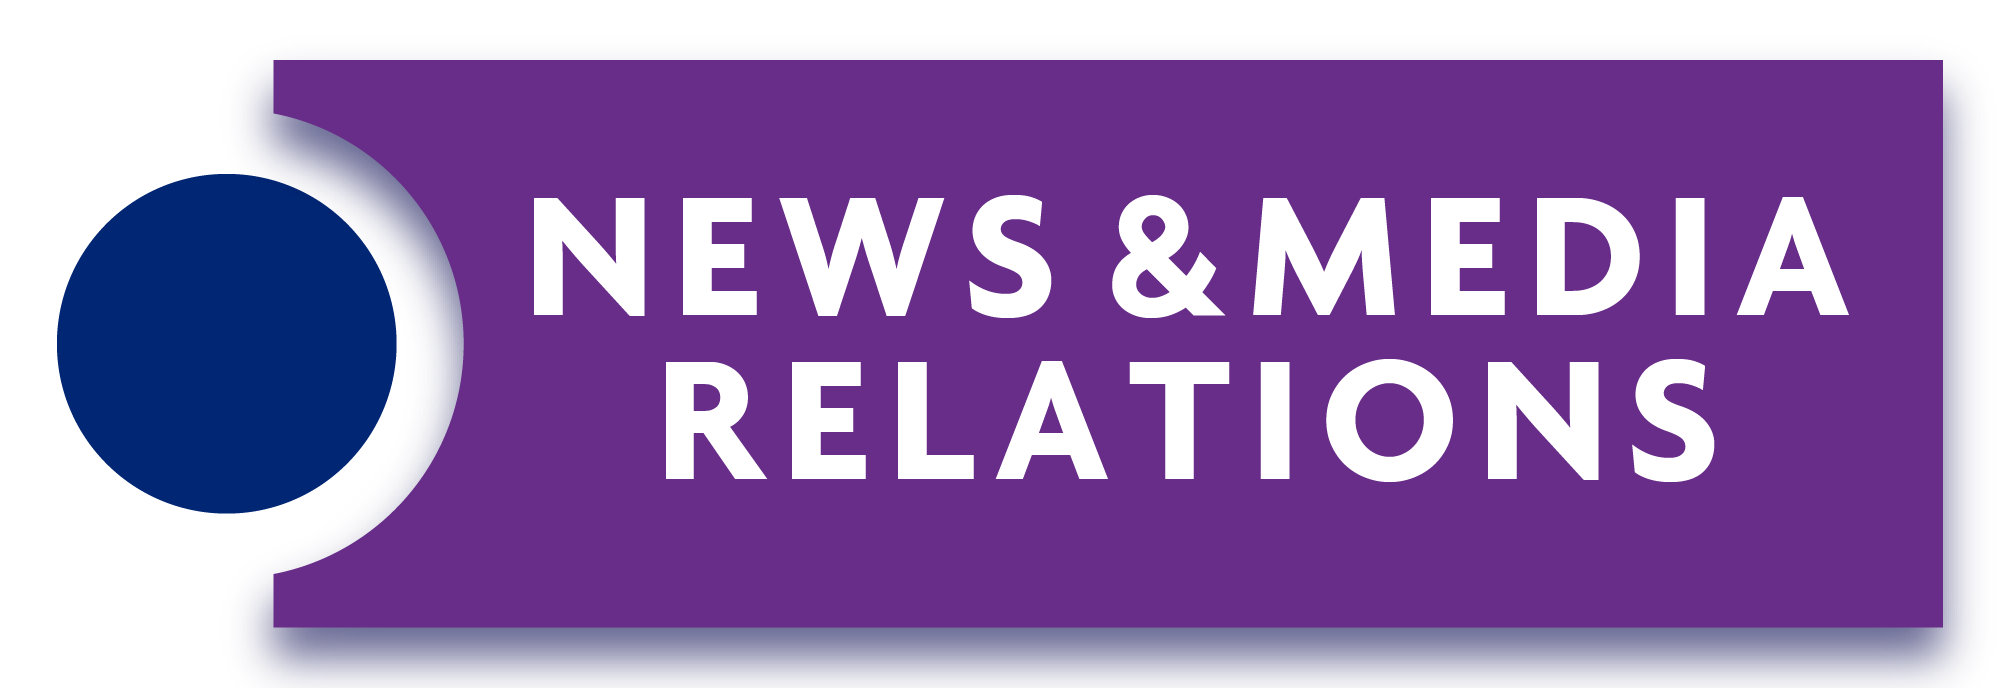 News and Media Relations